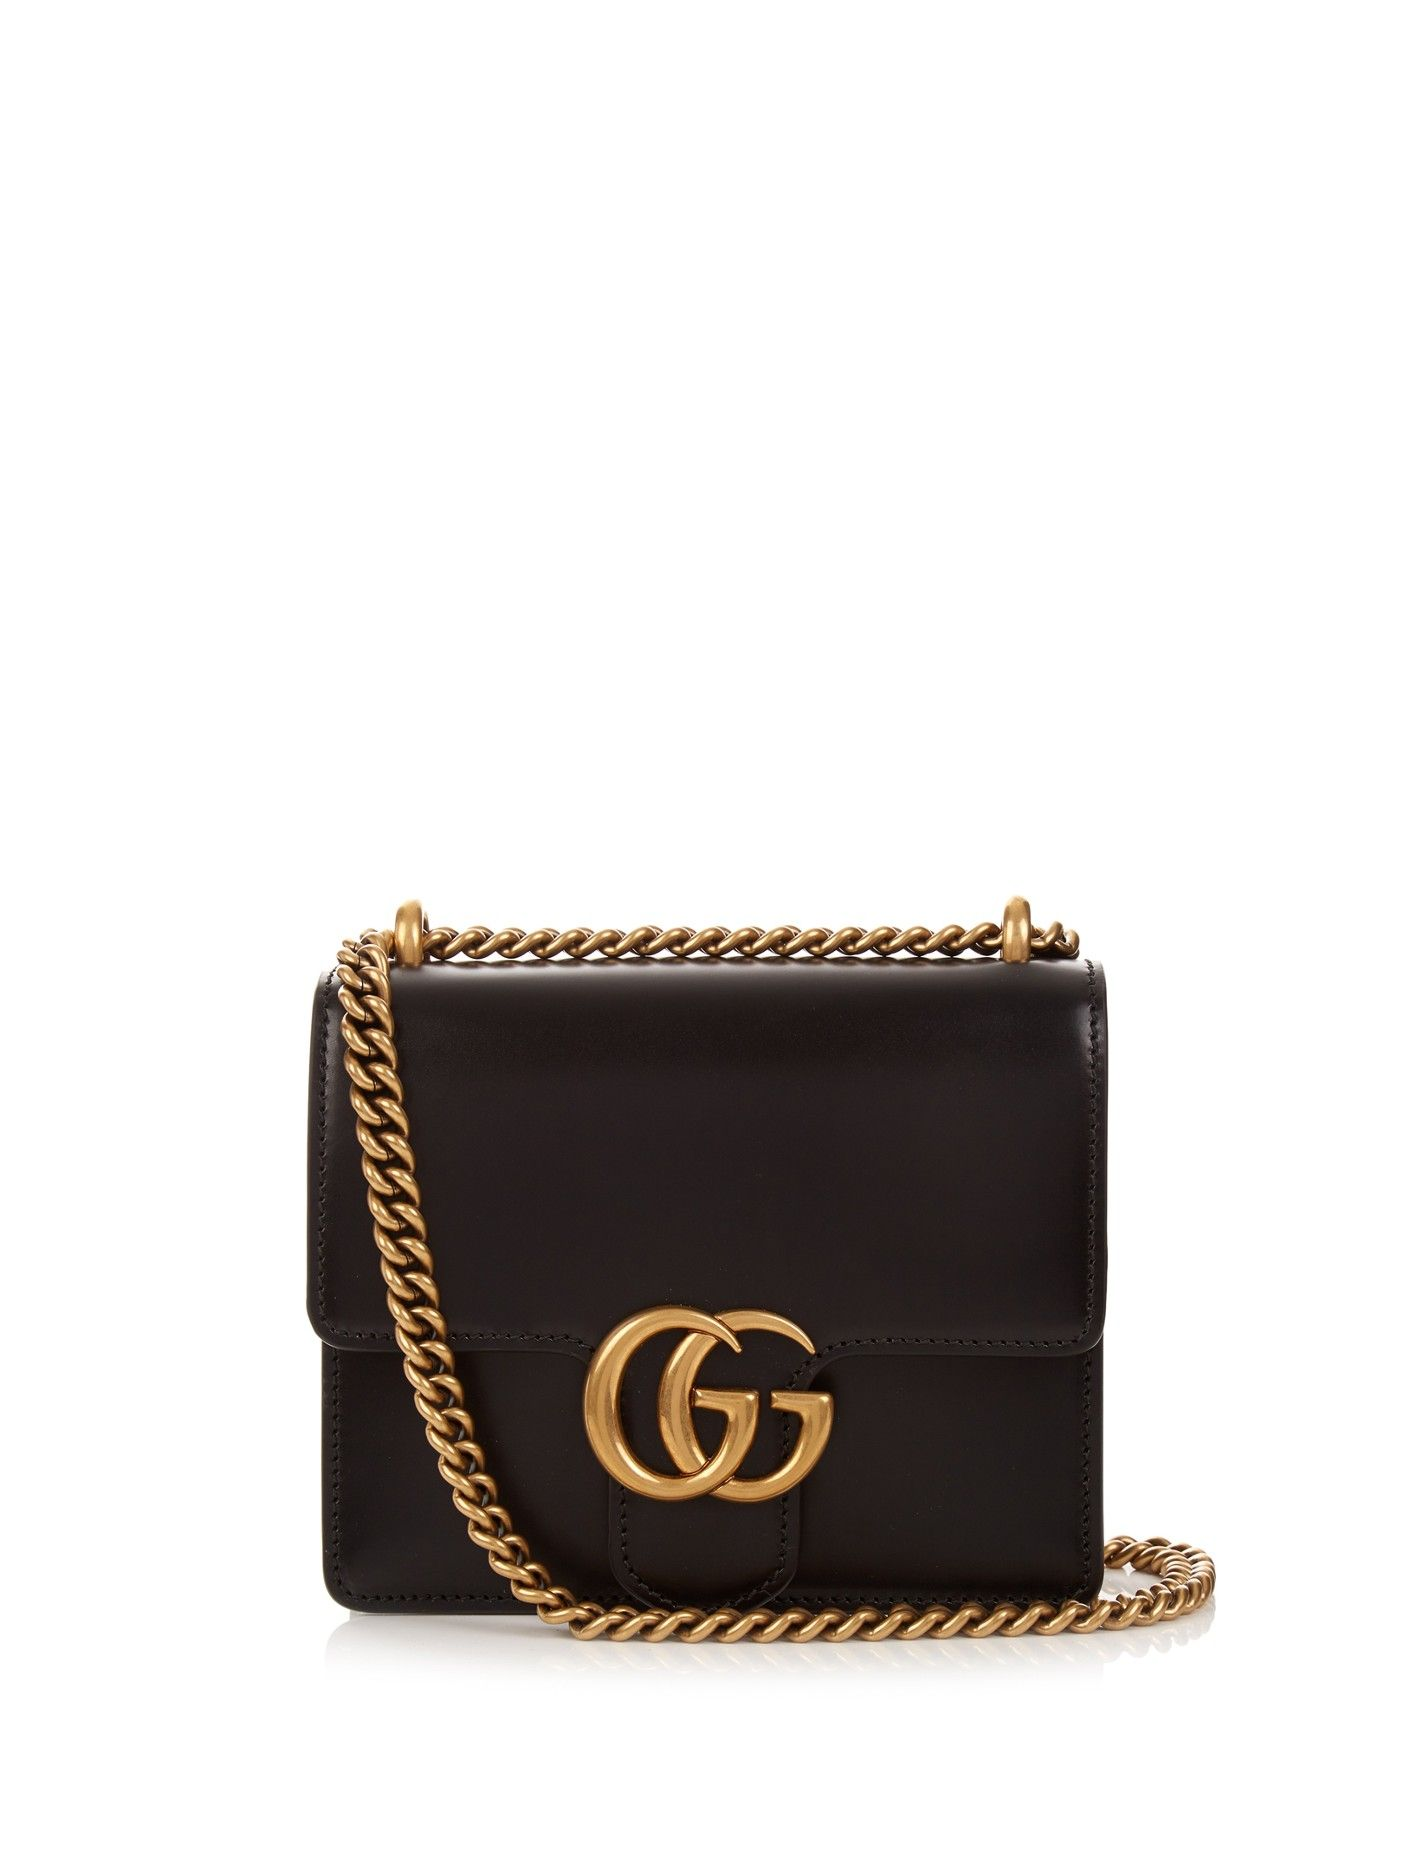 7b3f6886c6c GG Marmont leather cross-body bag